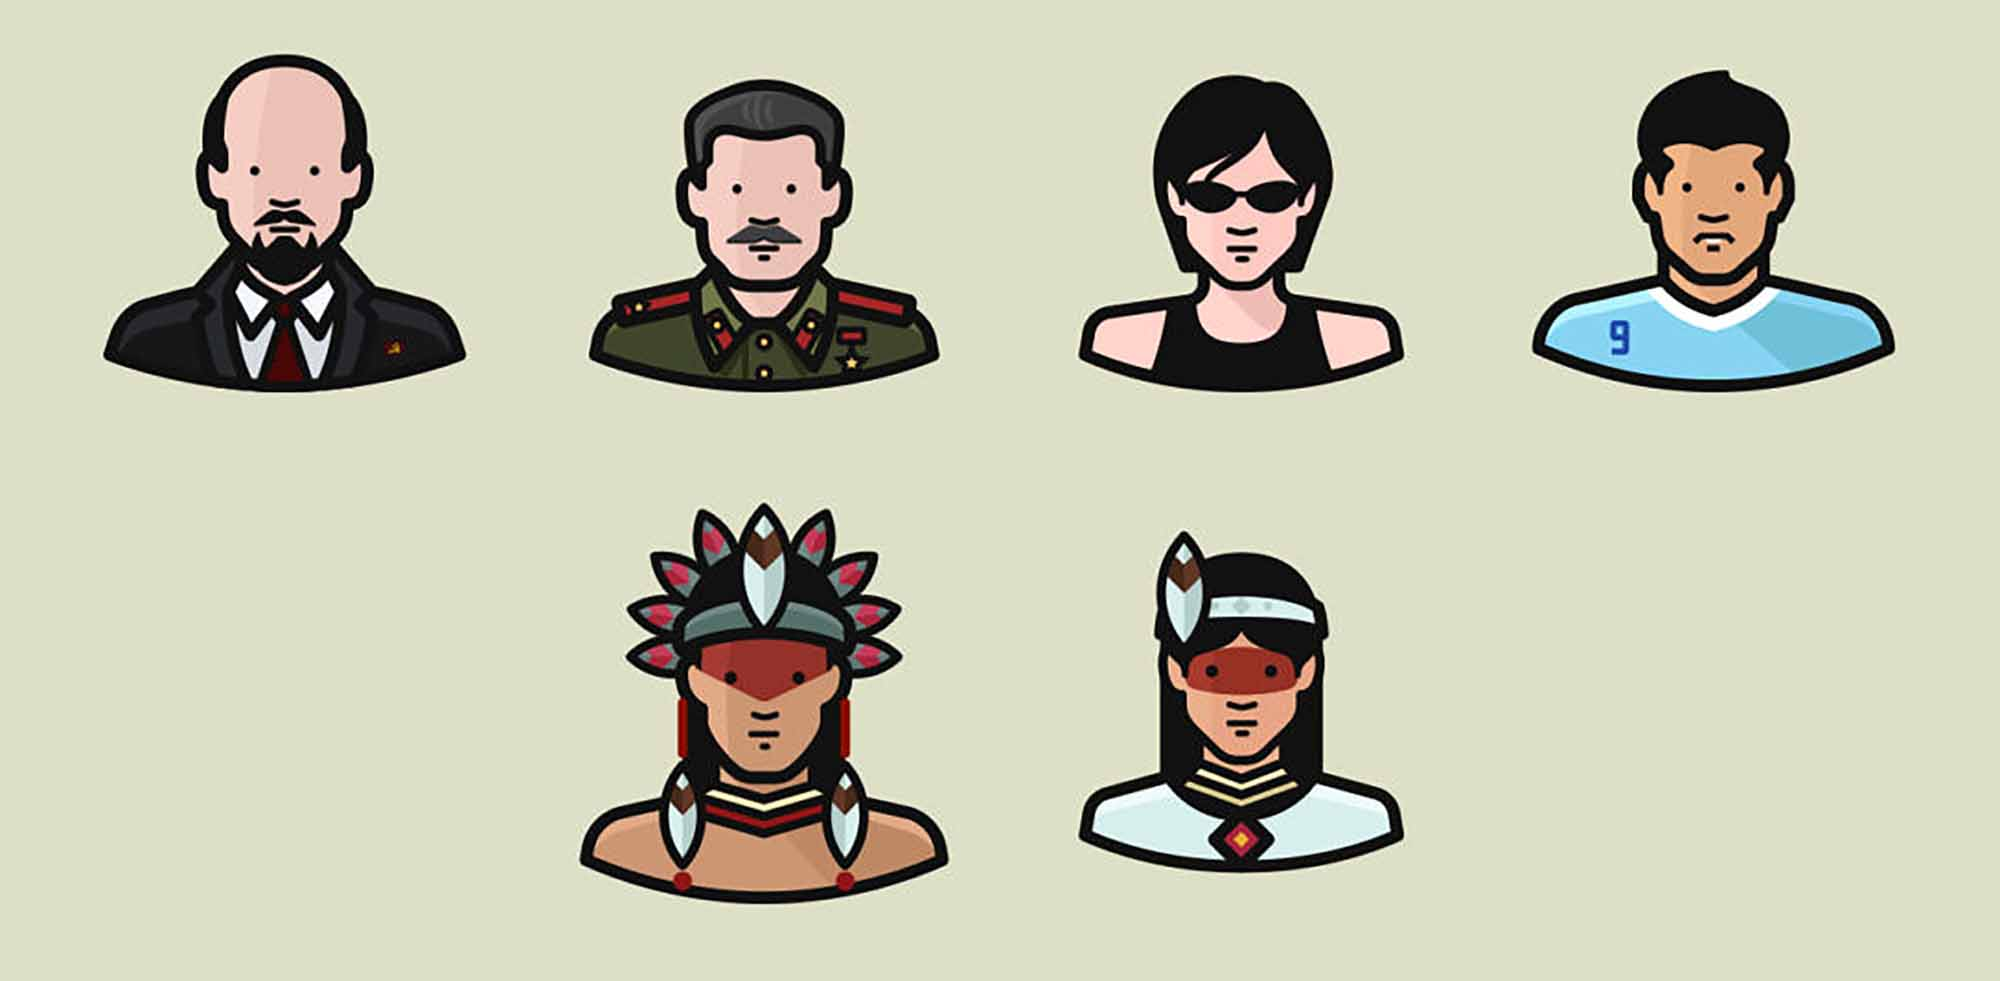 Diversity Avatars Vector Icons 4